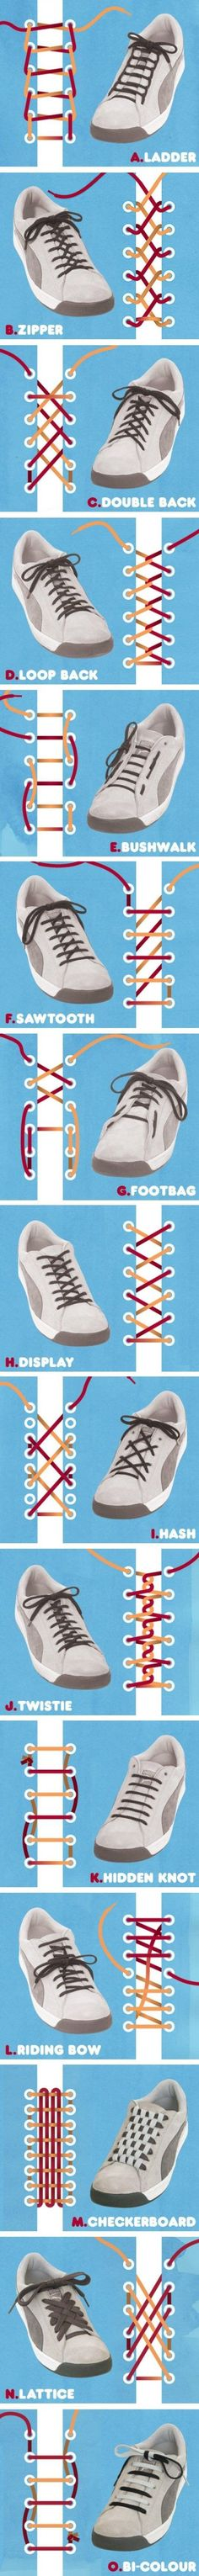 The best DIY projects & DIY ideas and tutorials: sewing, paper craft, DIY. Ideas About DIY Life Hacks & Crafts 2017 / 2018 Who knew there were so many different ways to tie your shoes? Tie Shoes, Your Shoes, Shoes Men, Shoes Sneakers, Ways To Tie Shoelaces, Good To Know, Just In Case, Helpful Hints, Life Hacks